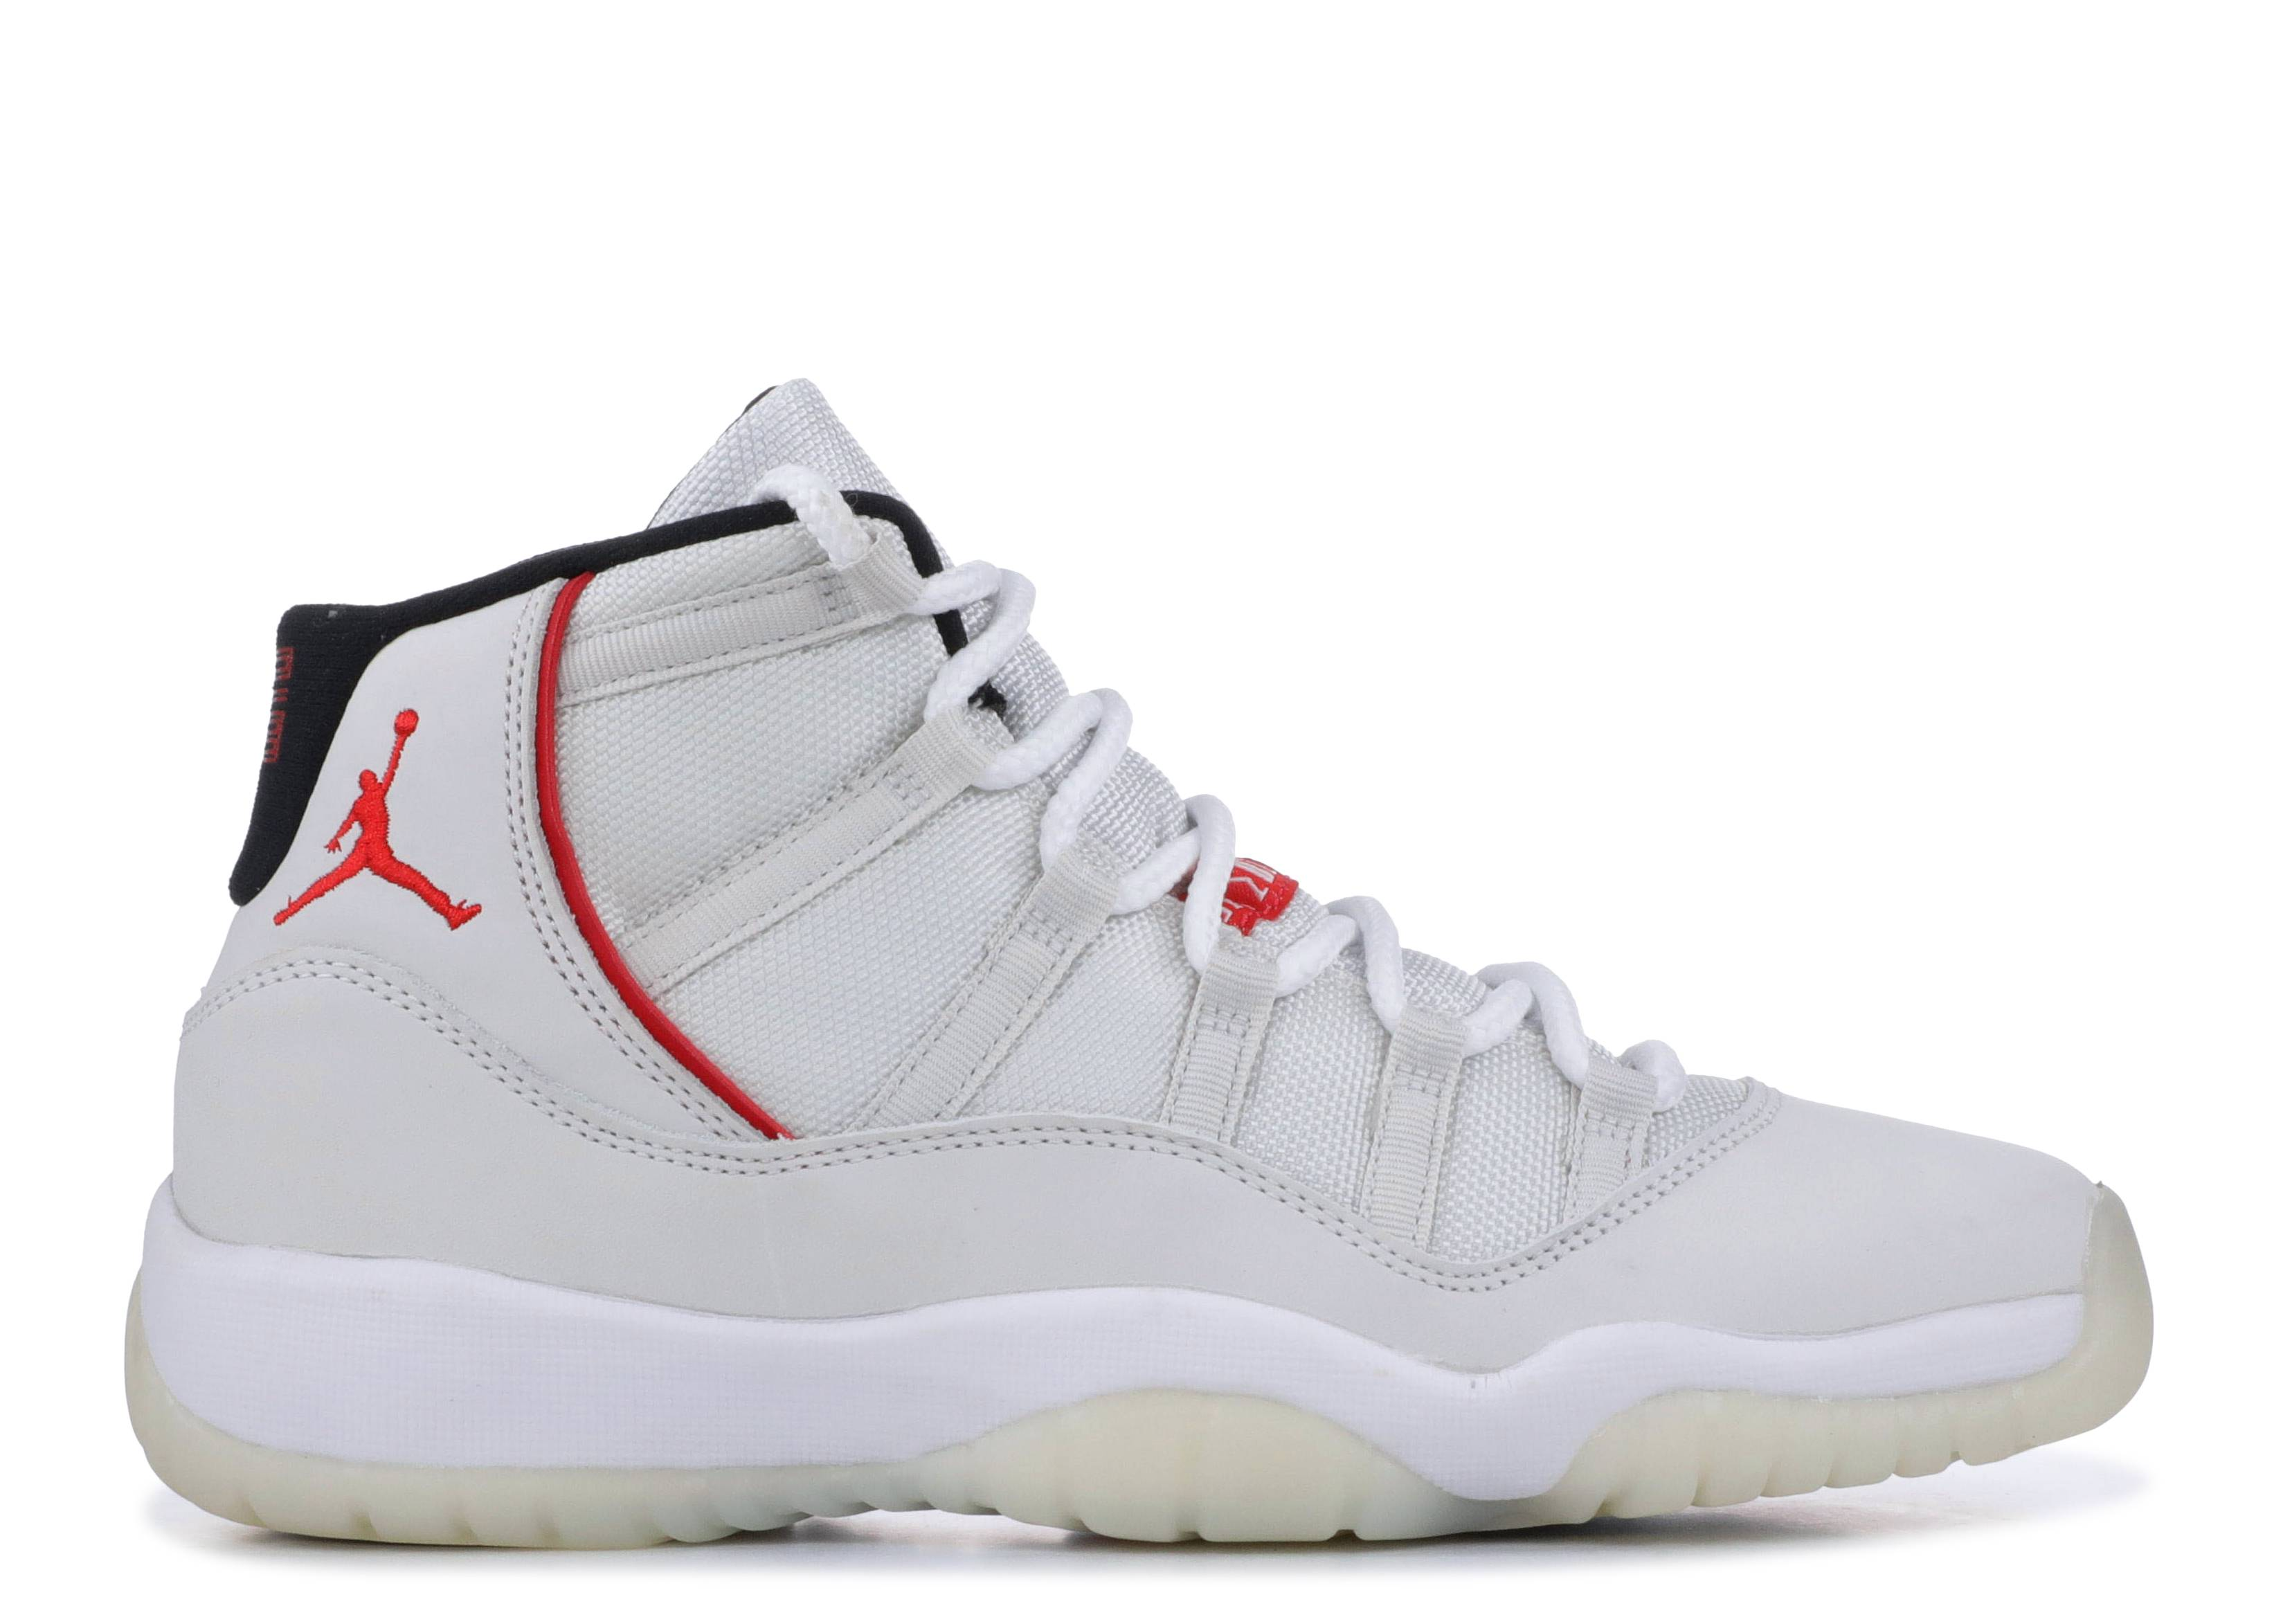 info for 2d950 f5fb3 Air Jordan 11 (XI) Shoes - Nike | Flight Club